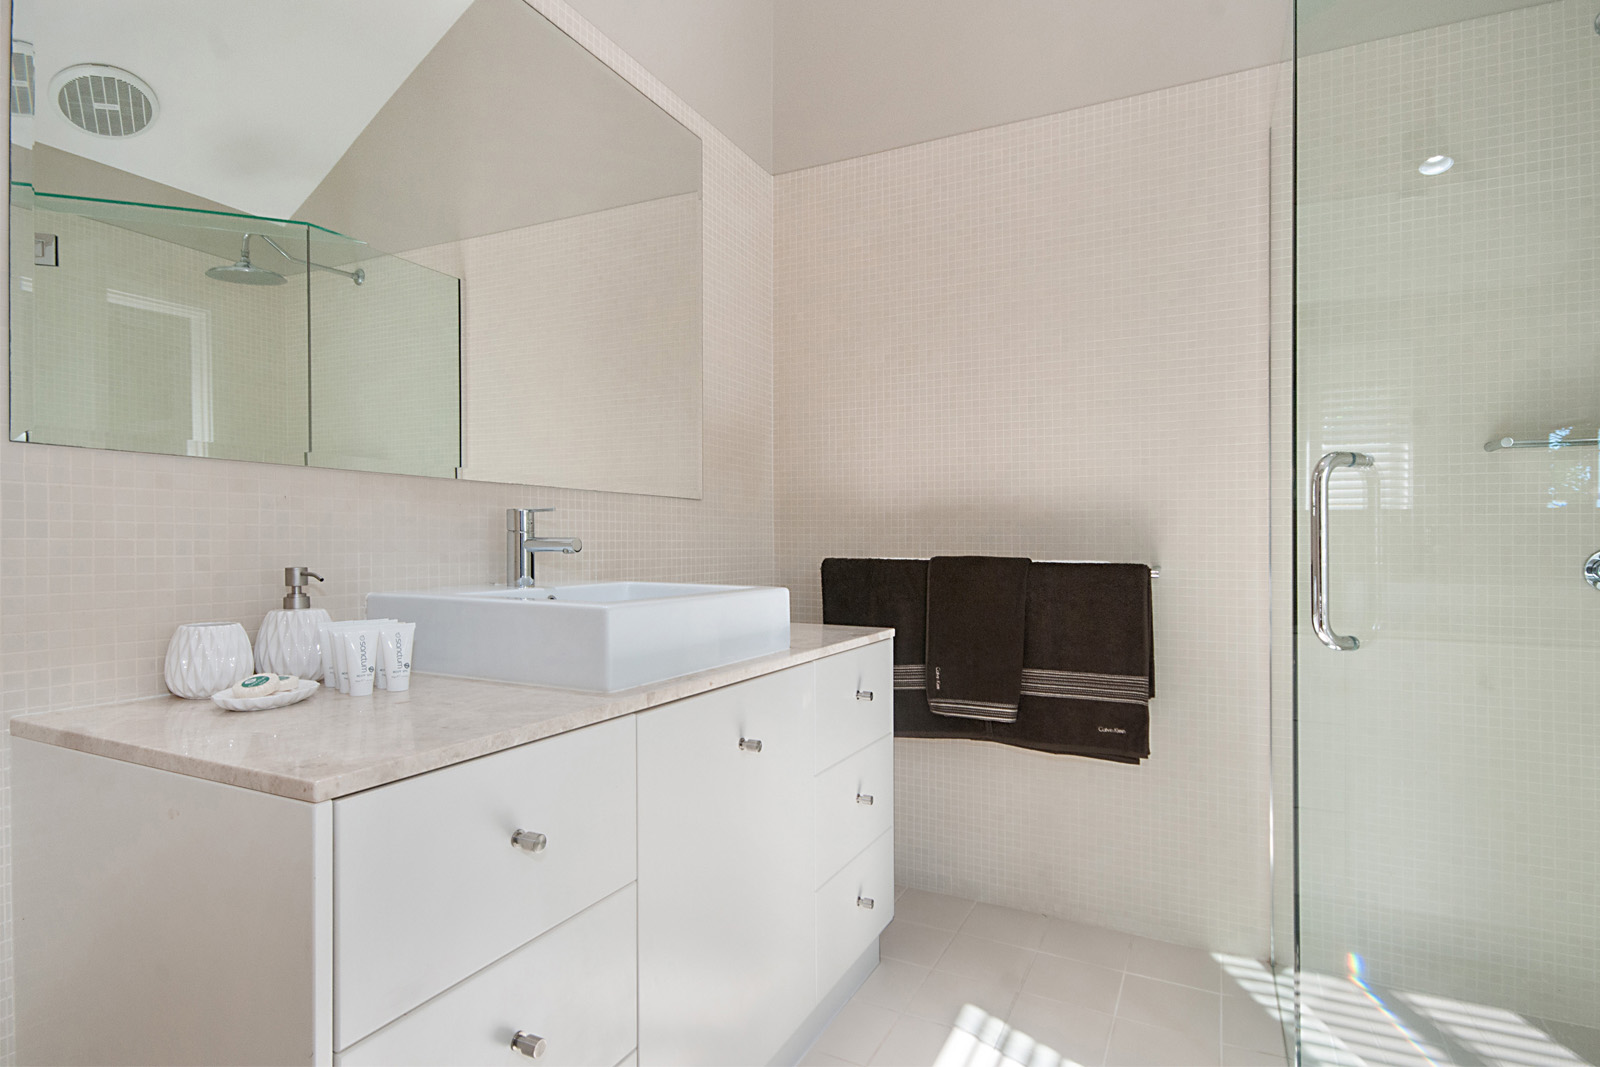 Cherie-Barber_Renovating-For-Profit_GET-THE-LOOK-Cherie-Barbers-Byron-Bay-Holiday-Home_Bathroom-After